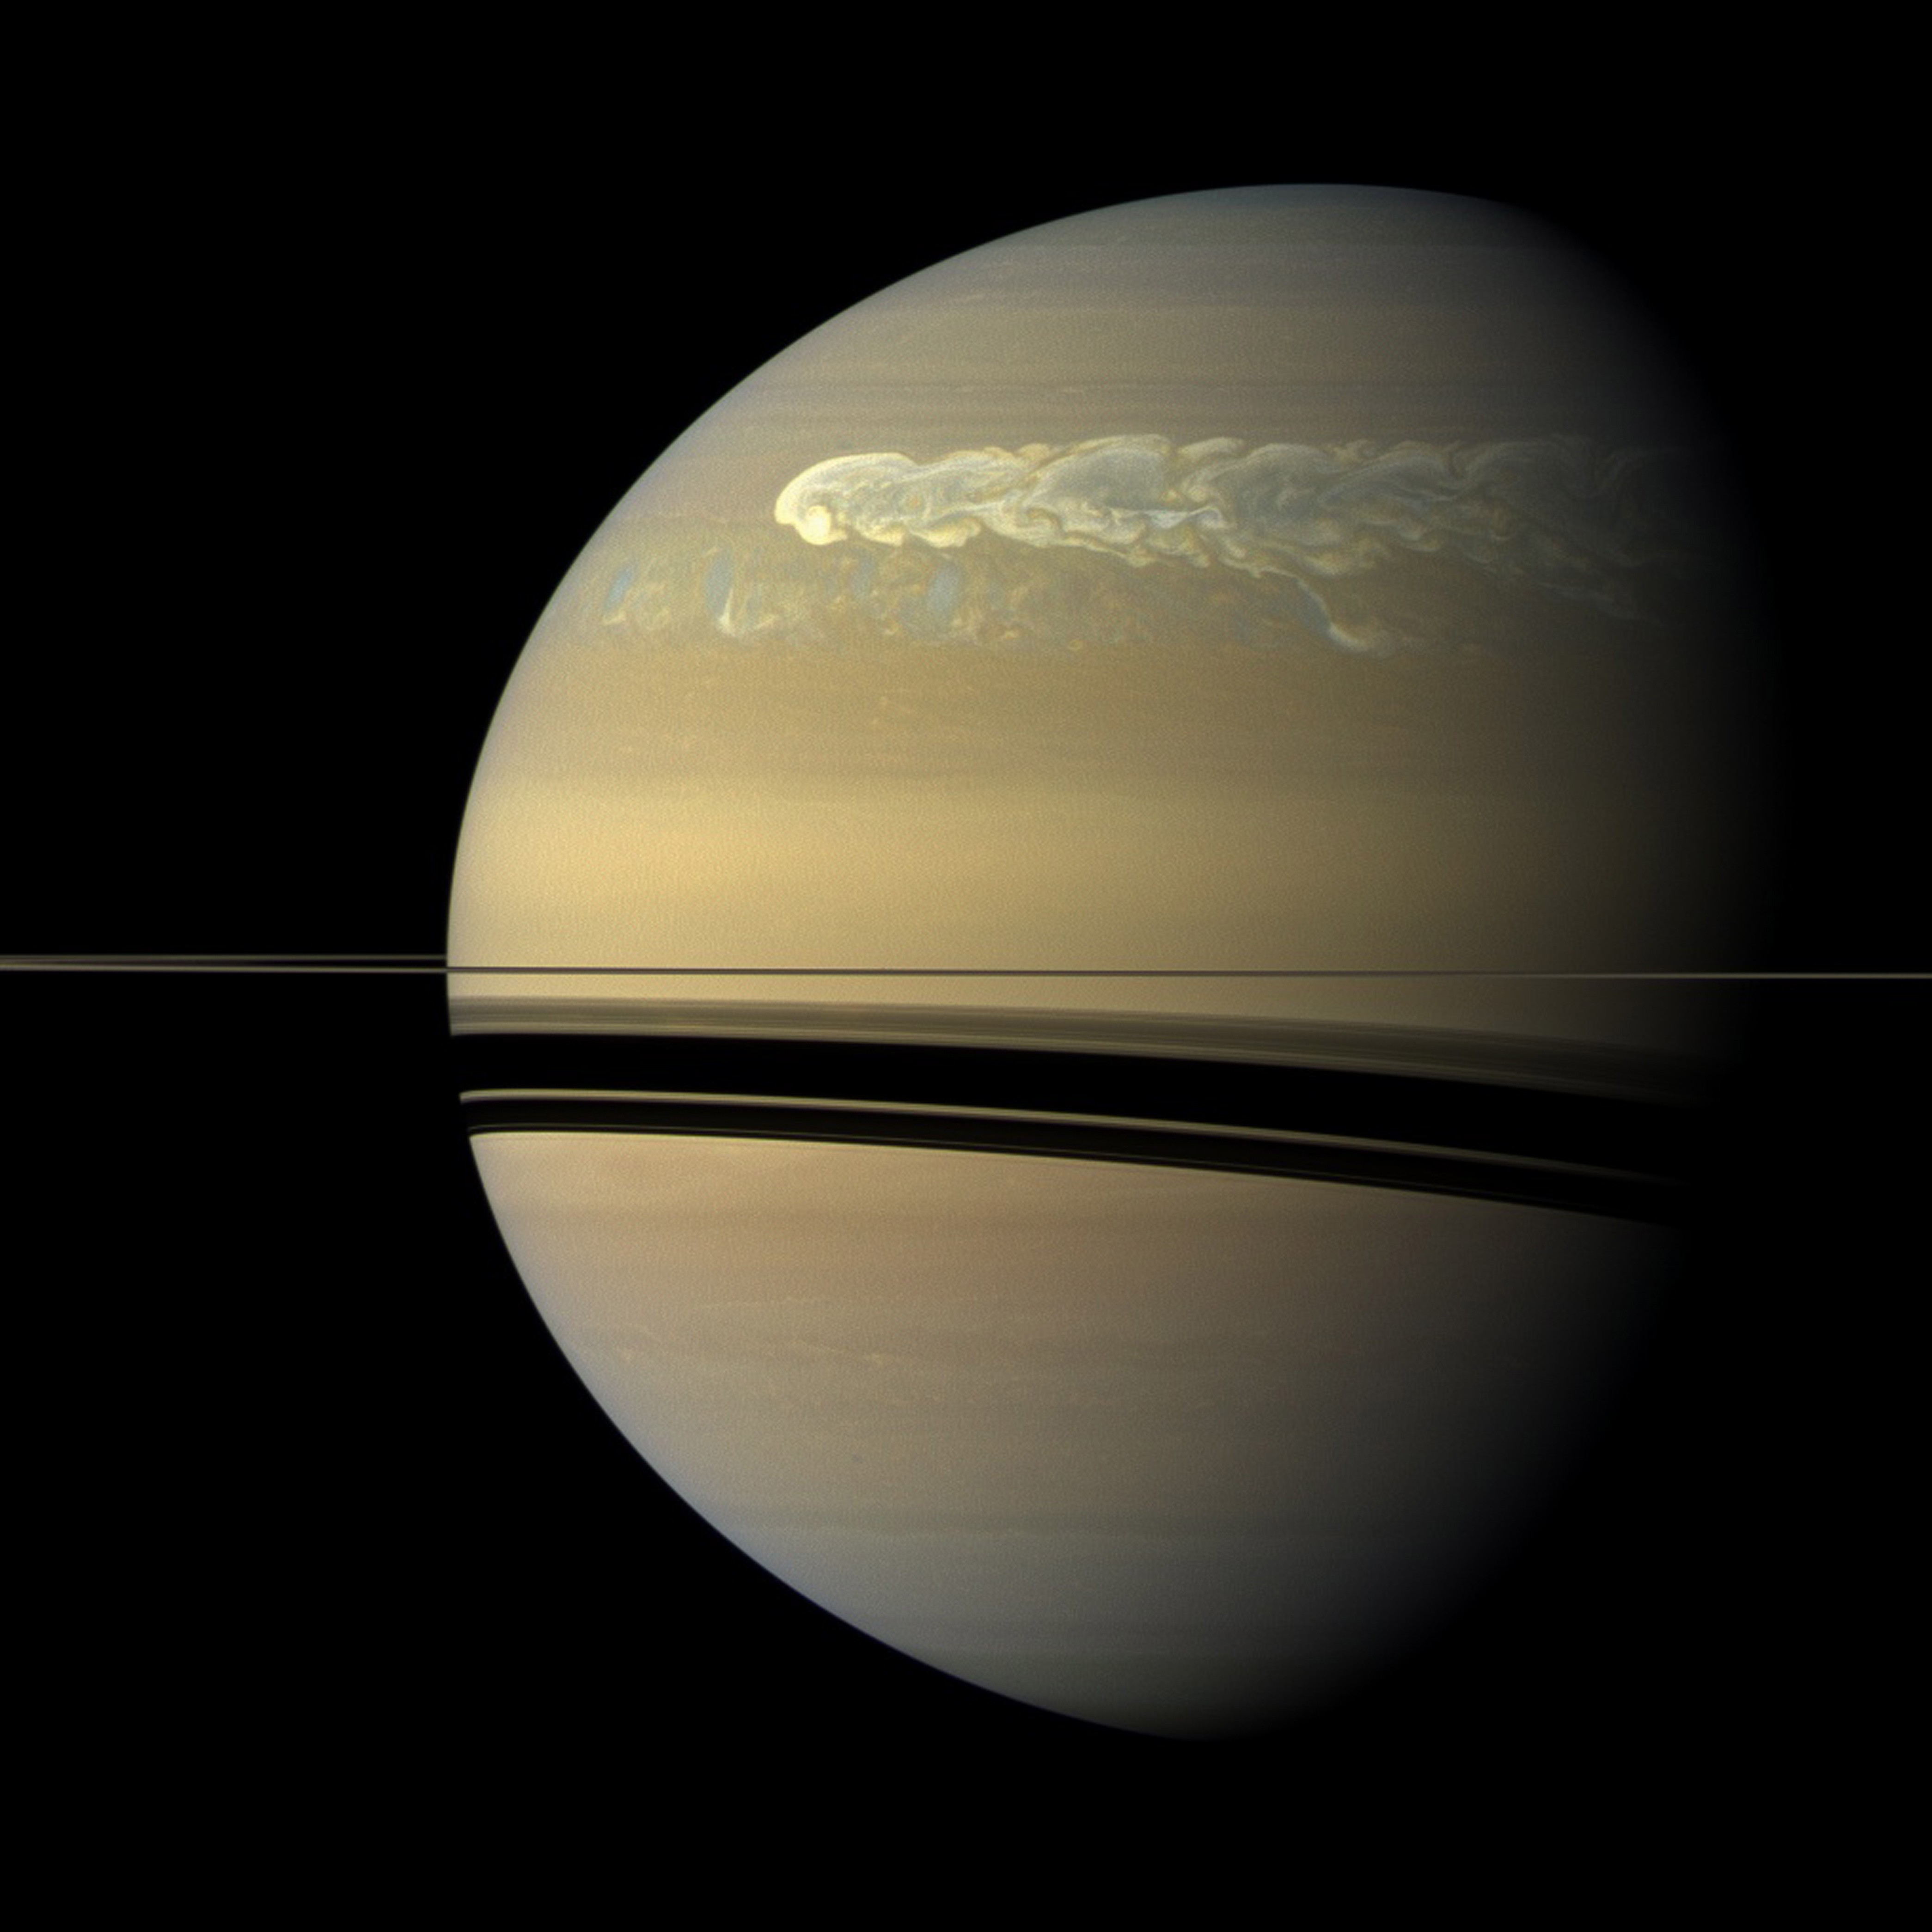 Saturn in a true-color view from NASA's Cassini spacecraft.